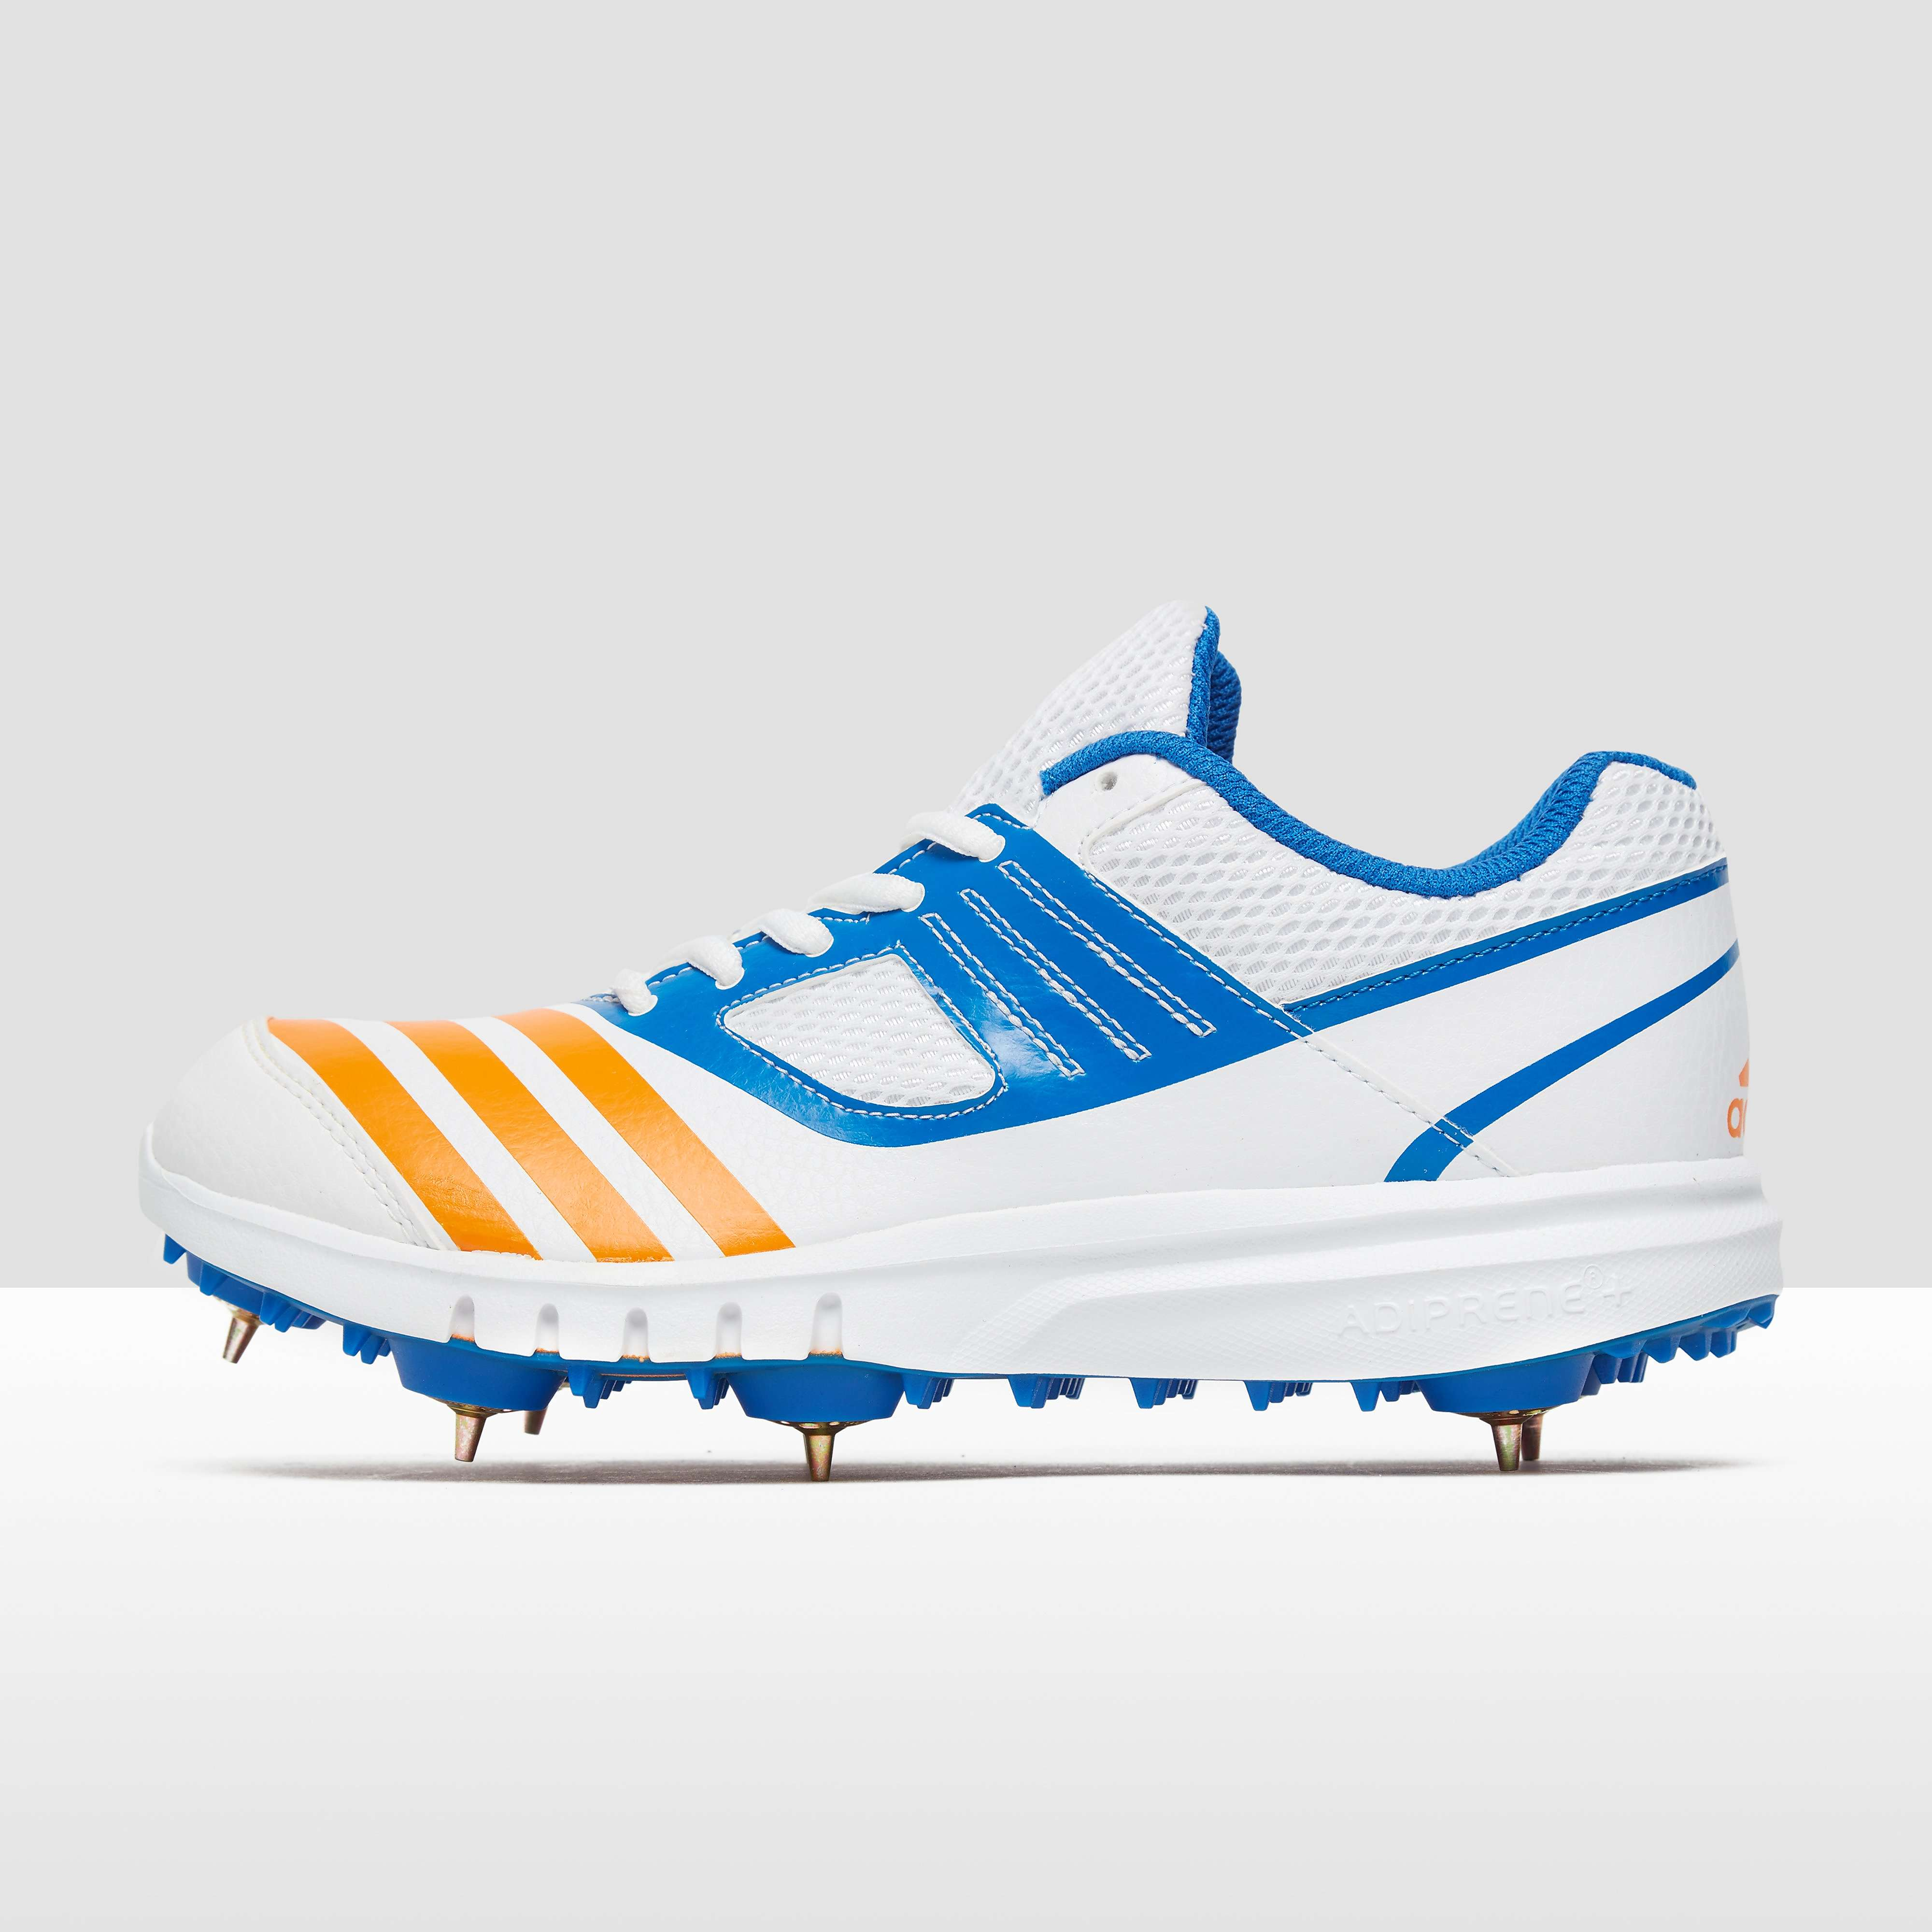 280688da269 Find every shop in the world selling cricket adidas howzat at ...